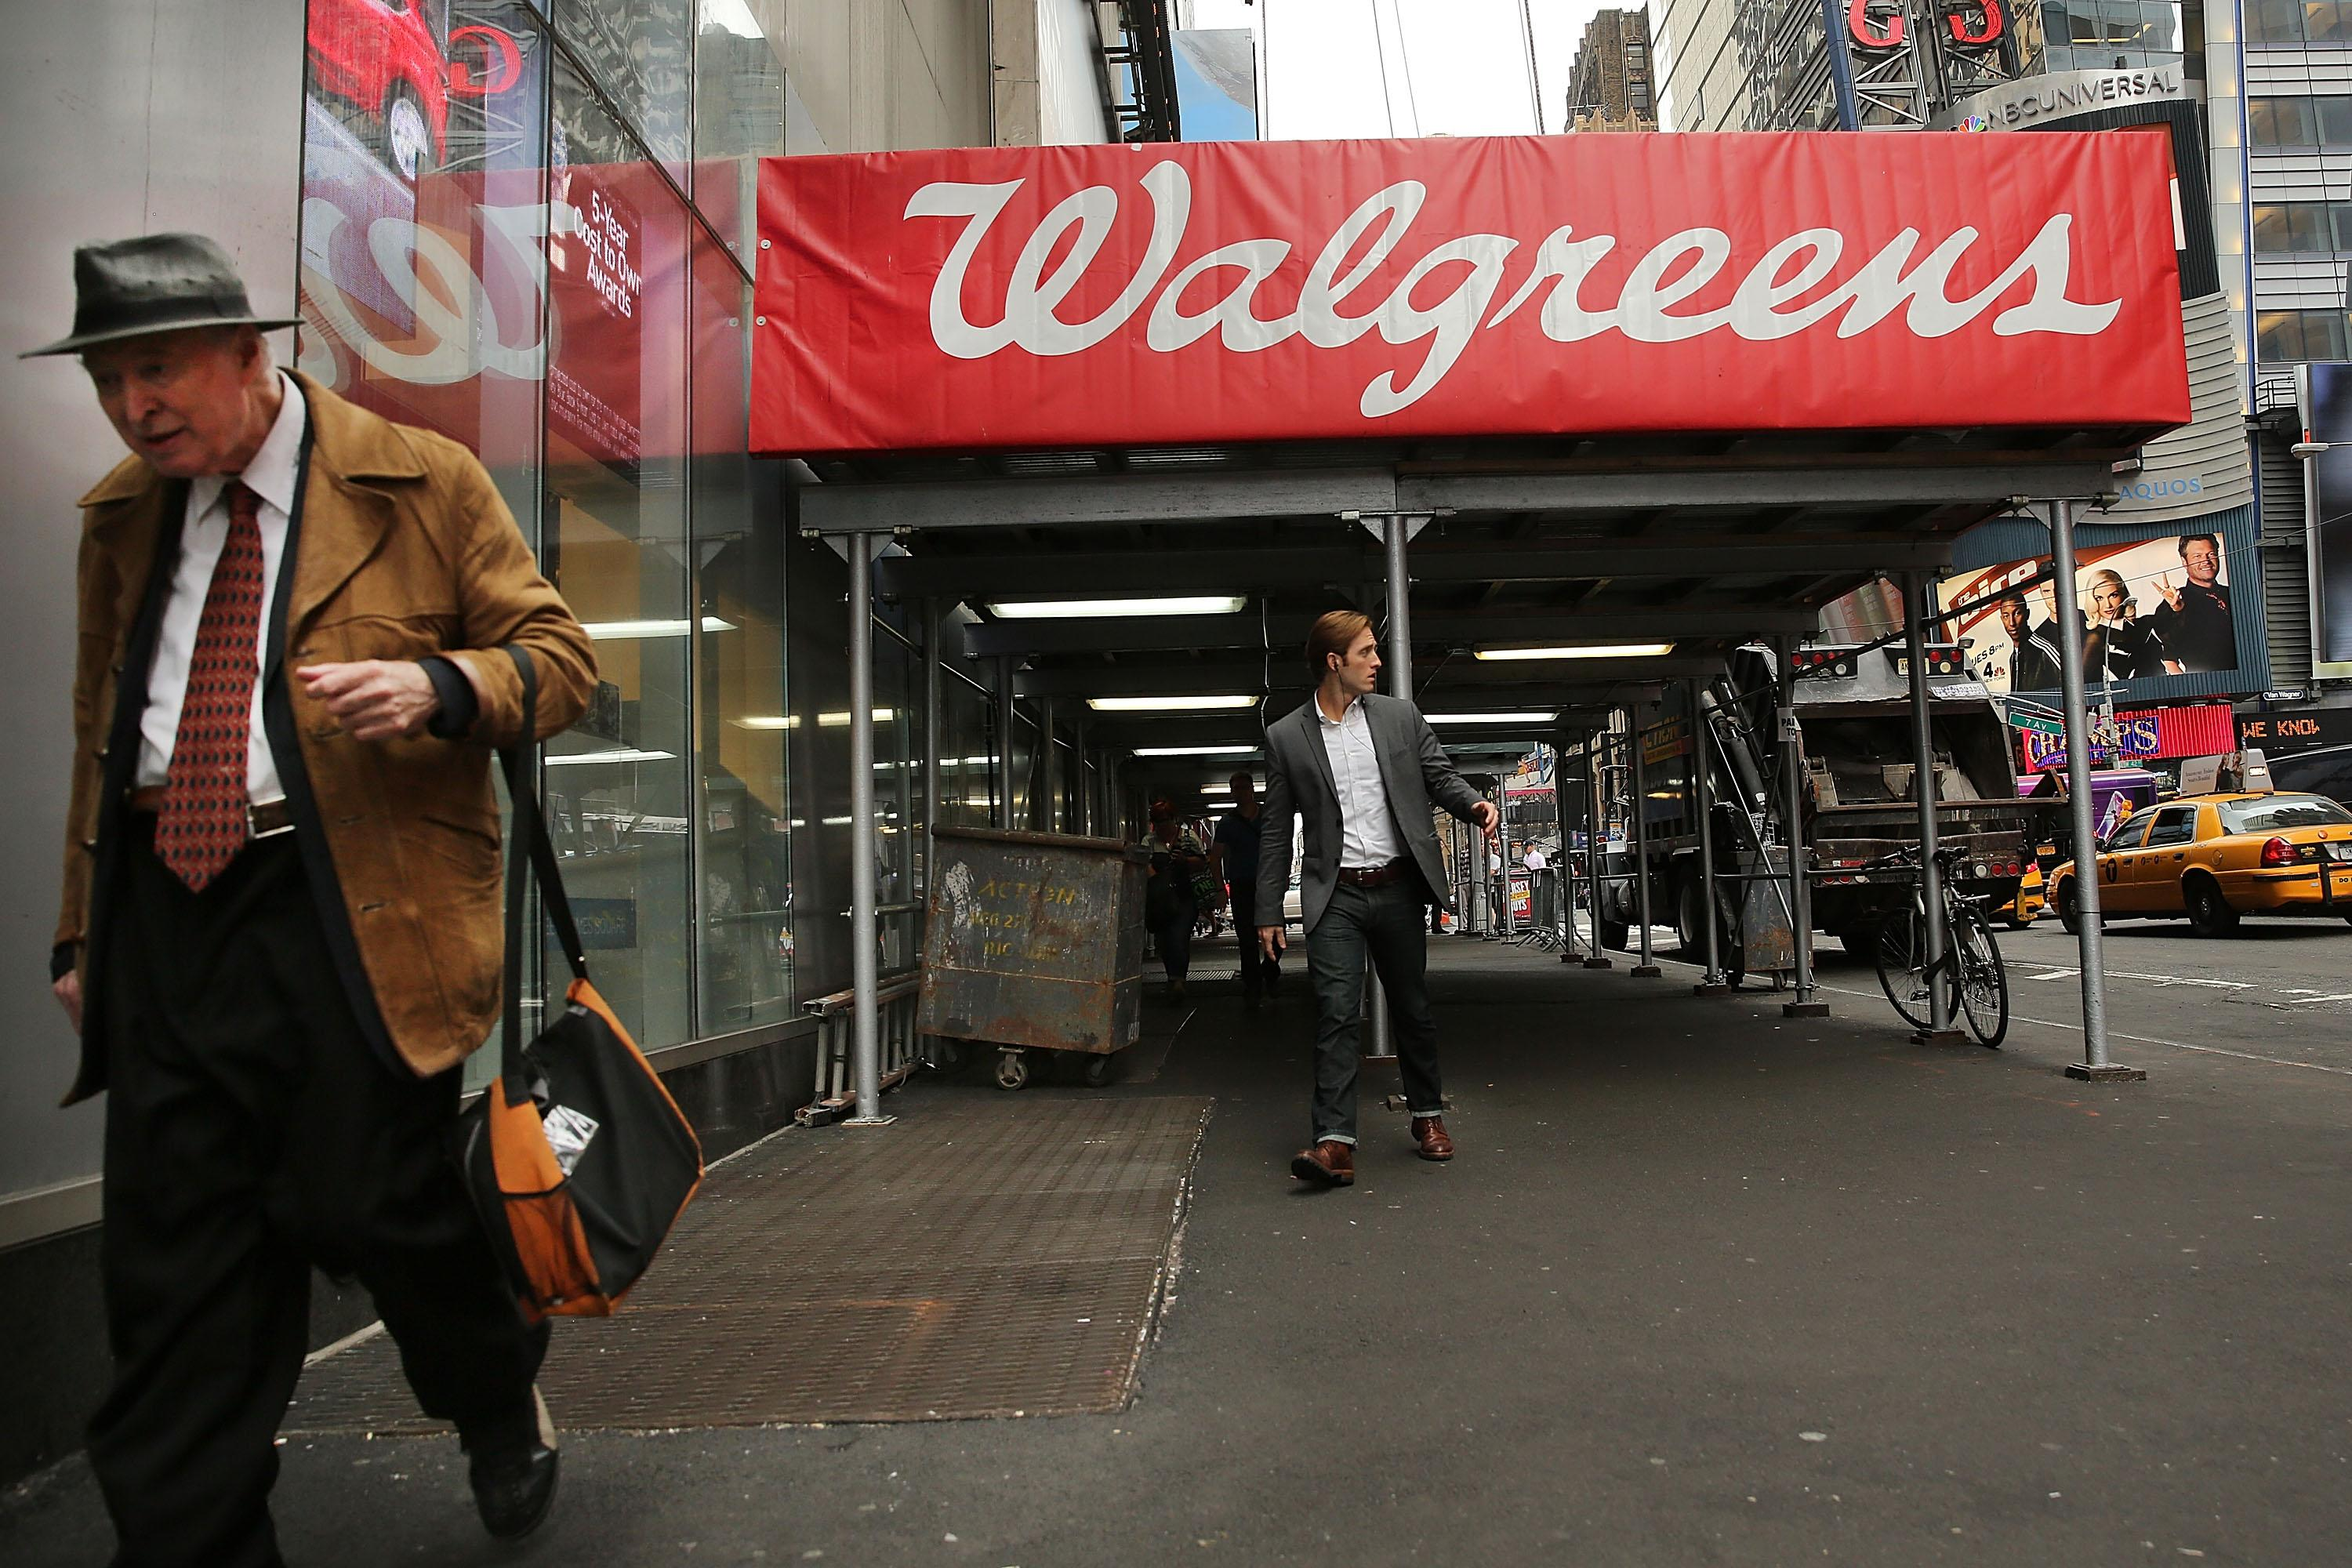 Markets Walgreens Stock Jumps After Selling More Pharmaceuticals